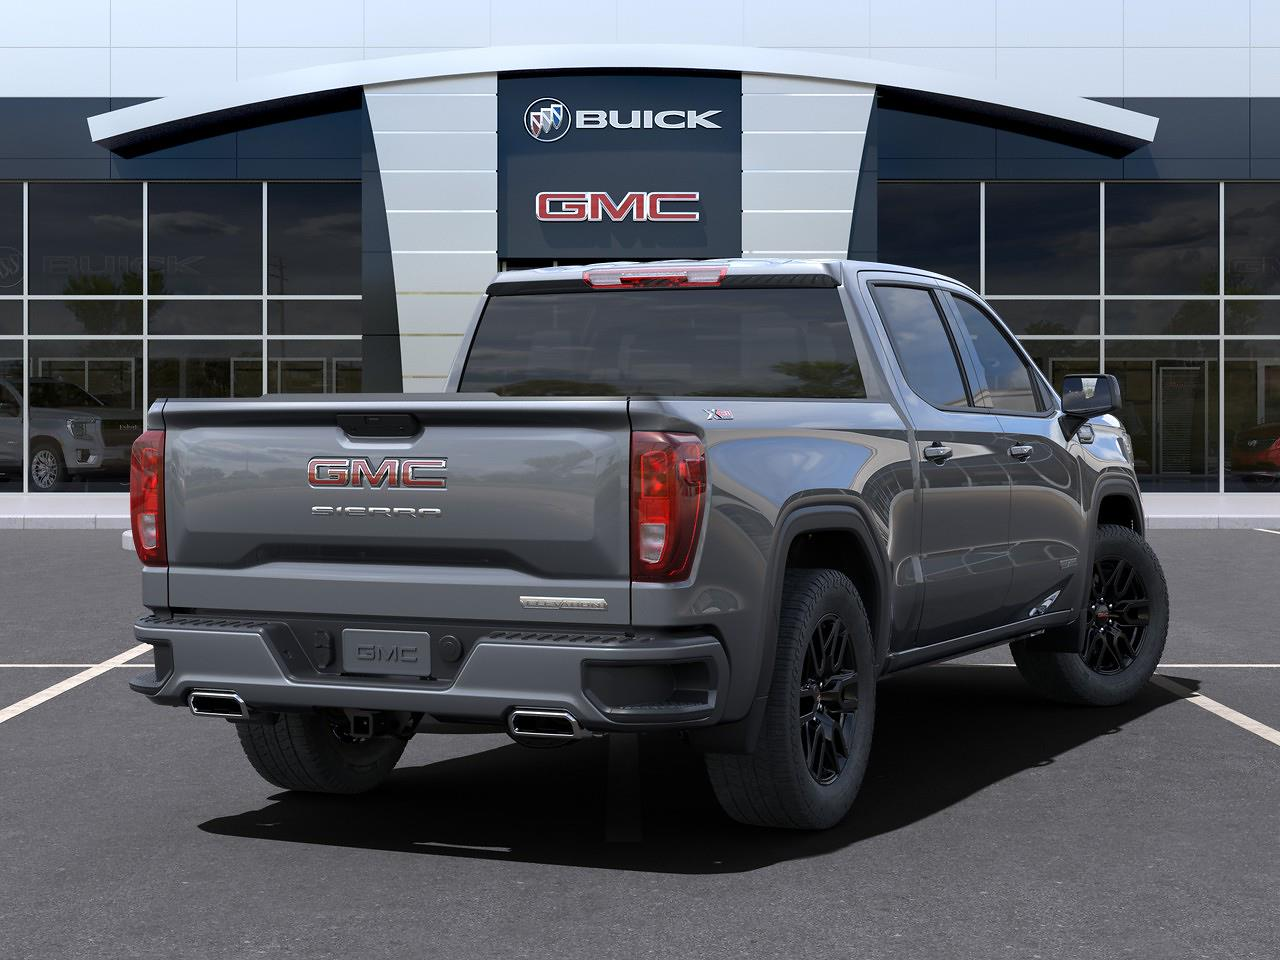 2021 GMC Sierra 1500 Crew Cab 4x4, Pickup #23590 - photo 2